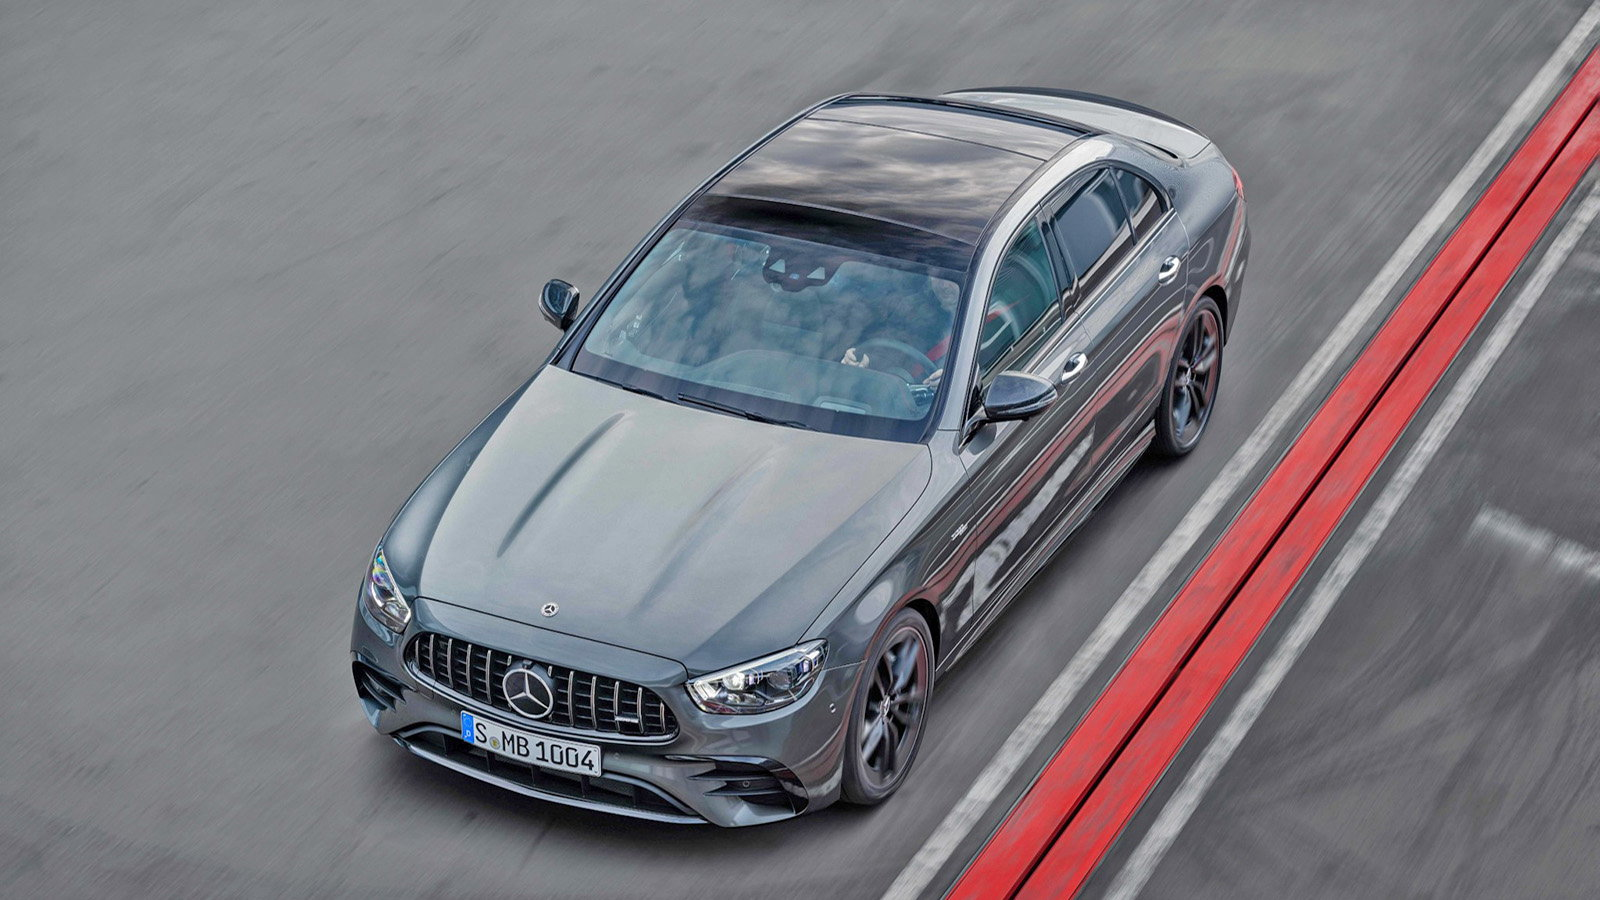 The 2021 AMG E53 Sedan Steps Out in Style | Mbworld